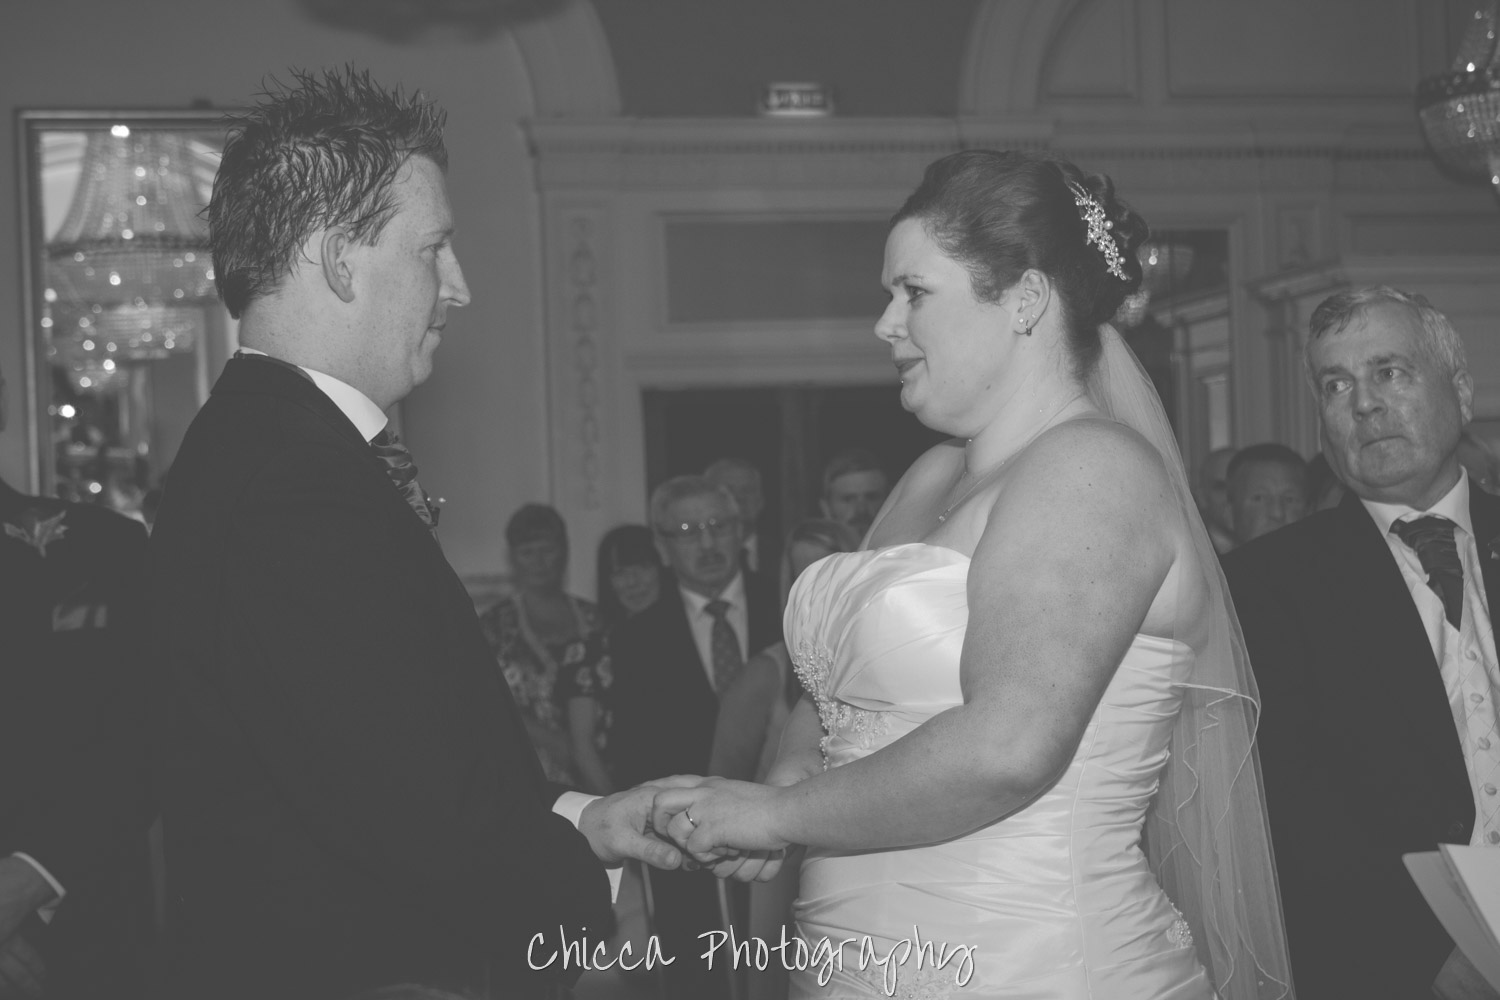 midland-hotel-bradford-wedding-photography-chicca-7.jpg